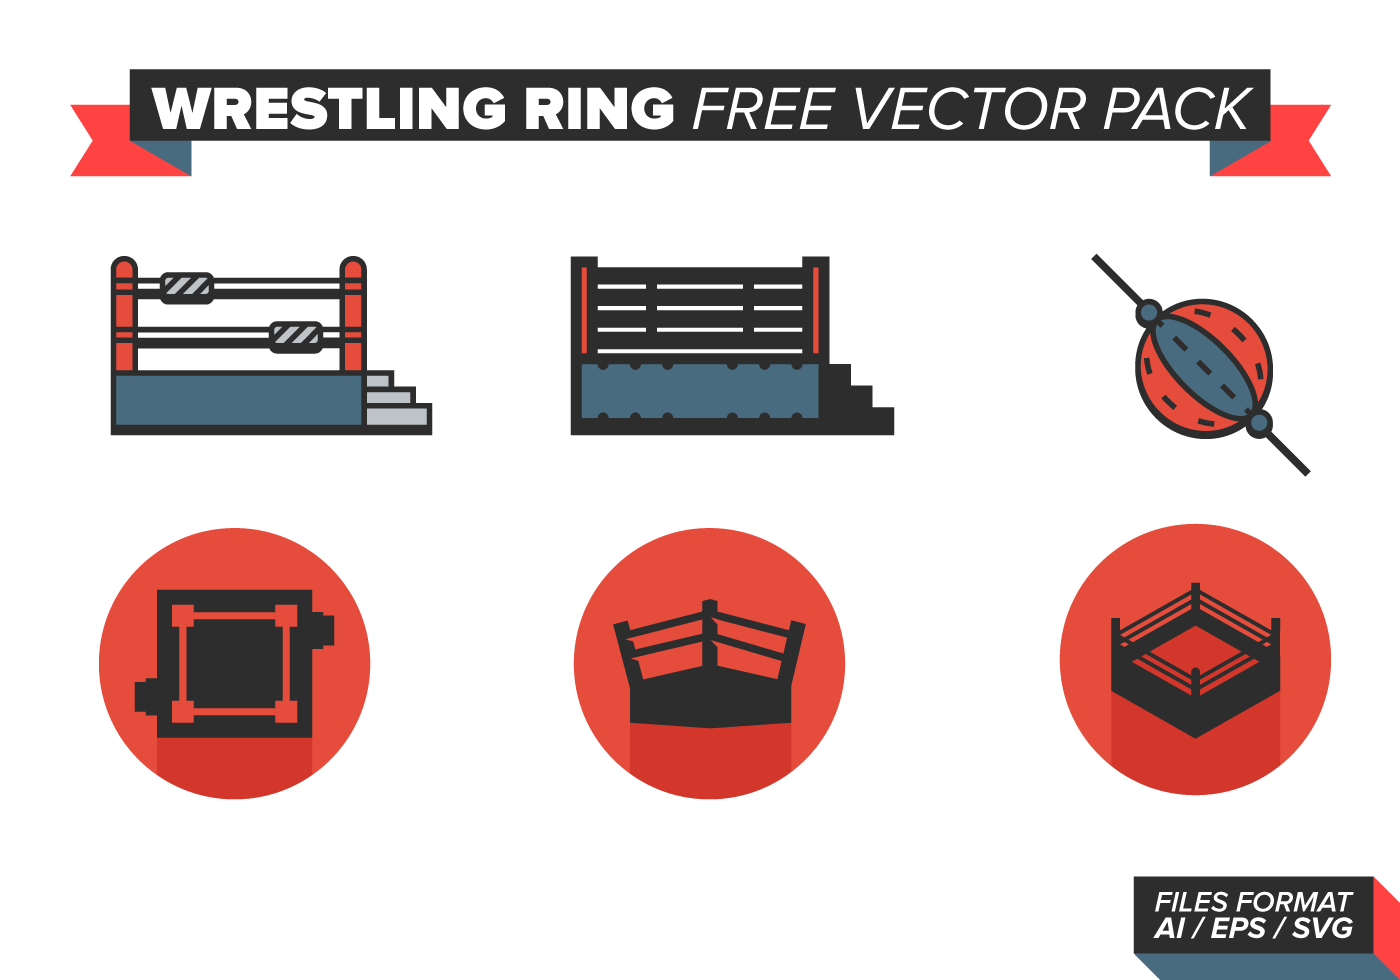 wrestling ring free vector pack download free vector art